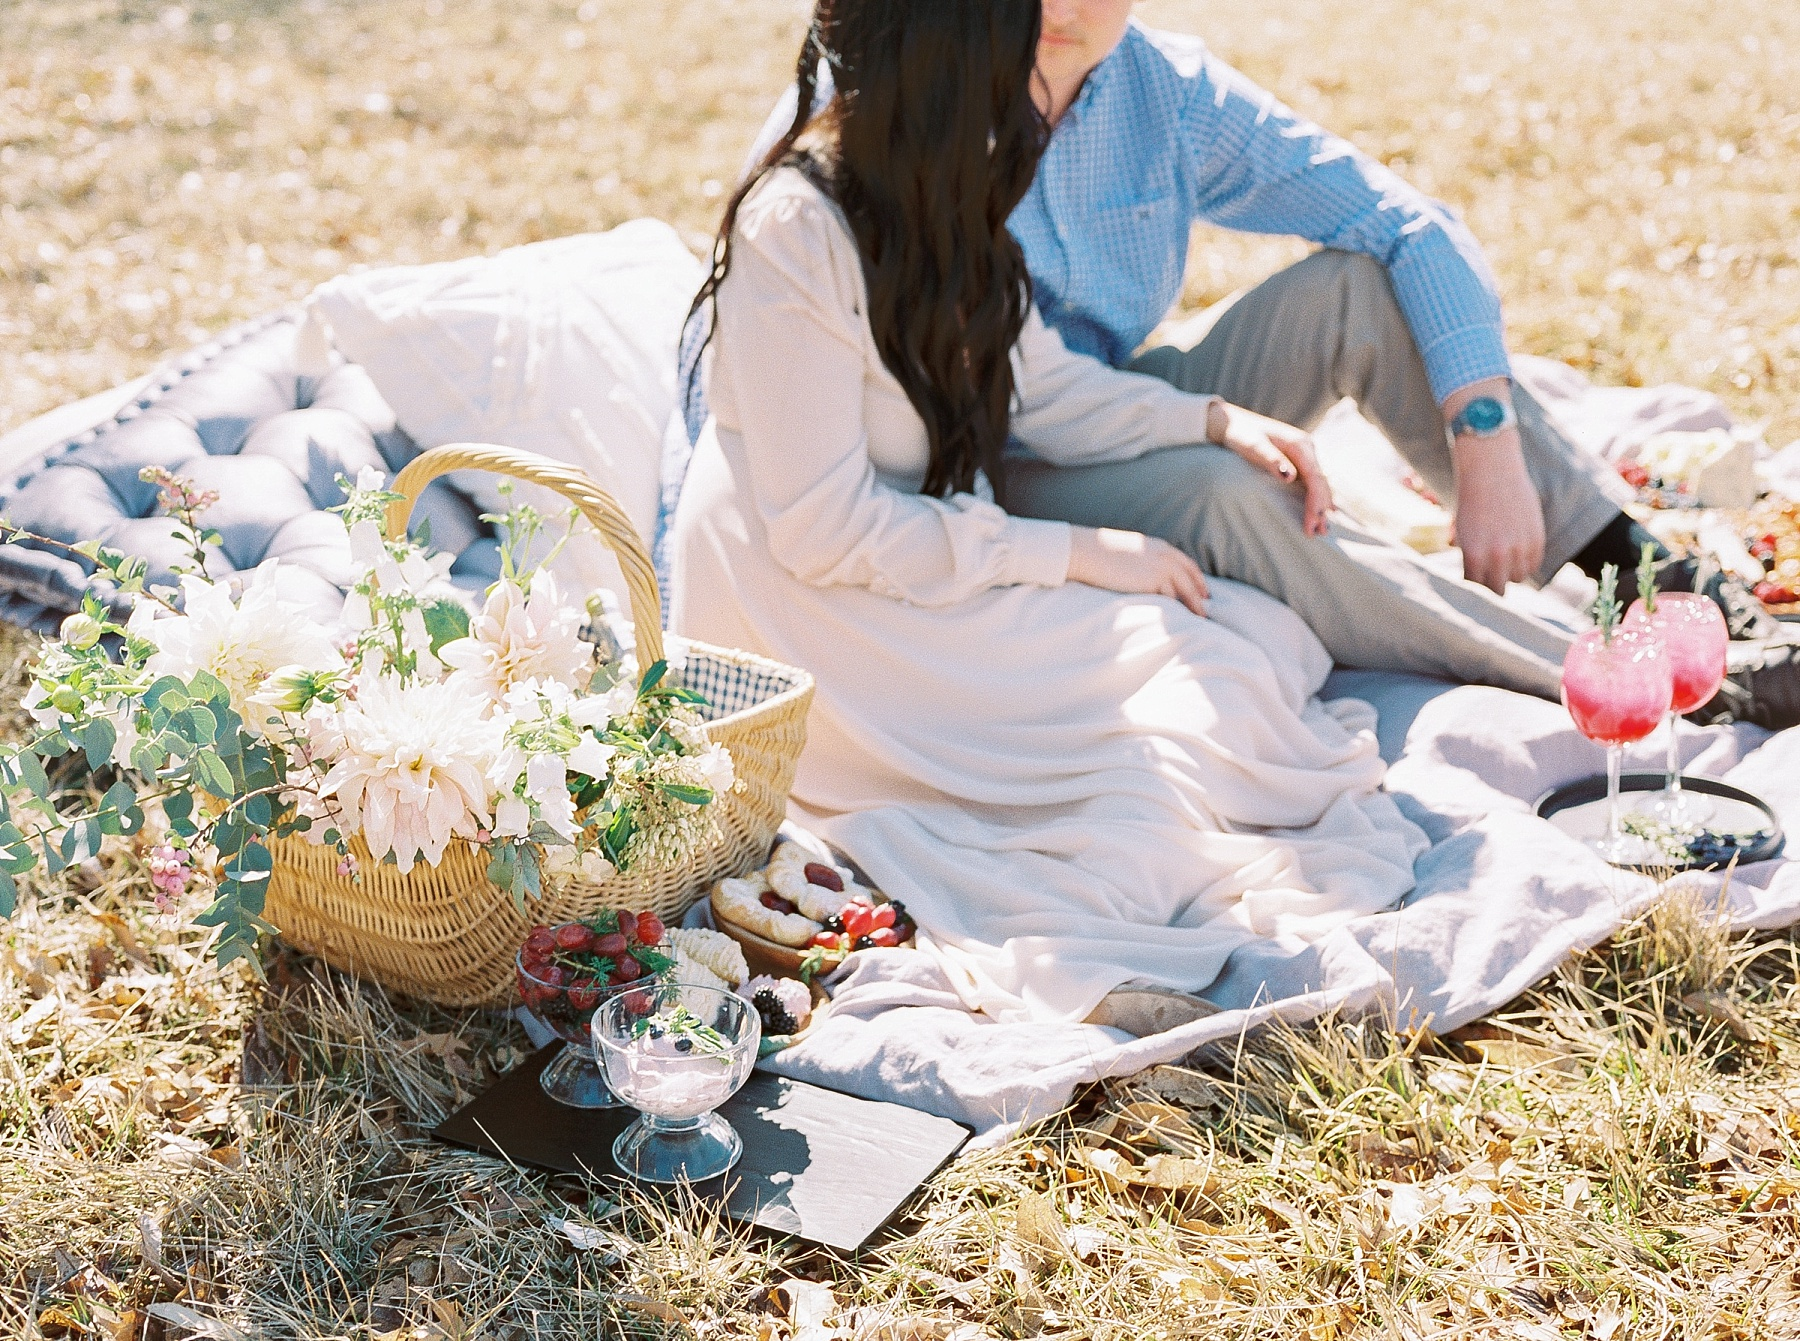 Late Fall Farm-to-table Inspired Brunch Picnic Engagement Session During Wedding Weekend by Kelsi Kliethermes Photography Best Missouri and Maui Wedding Photographer_0003.jpg